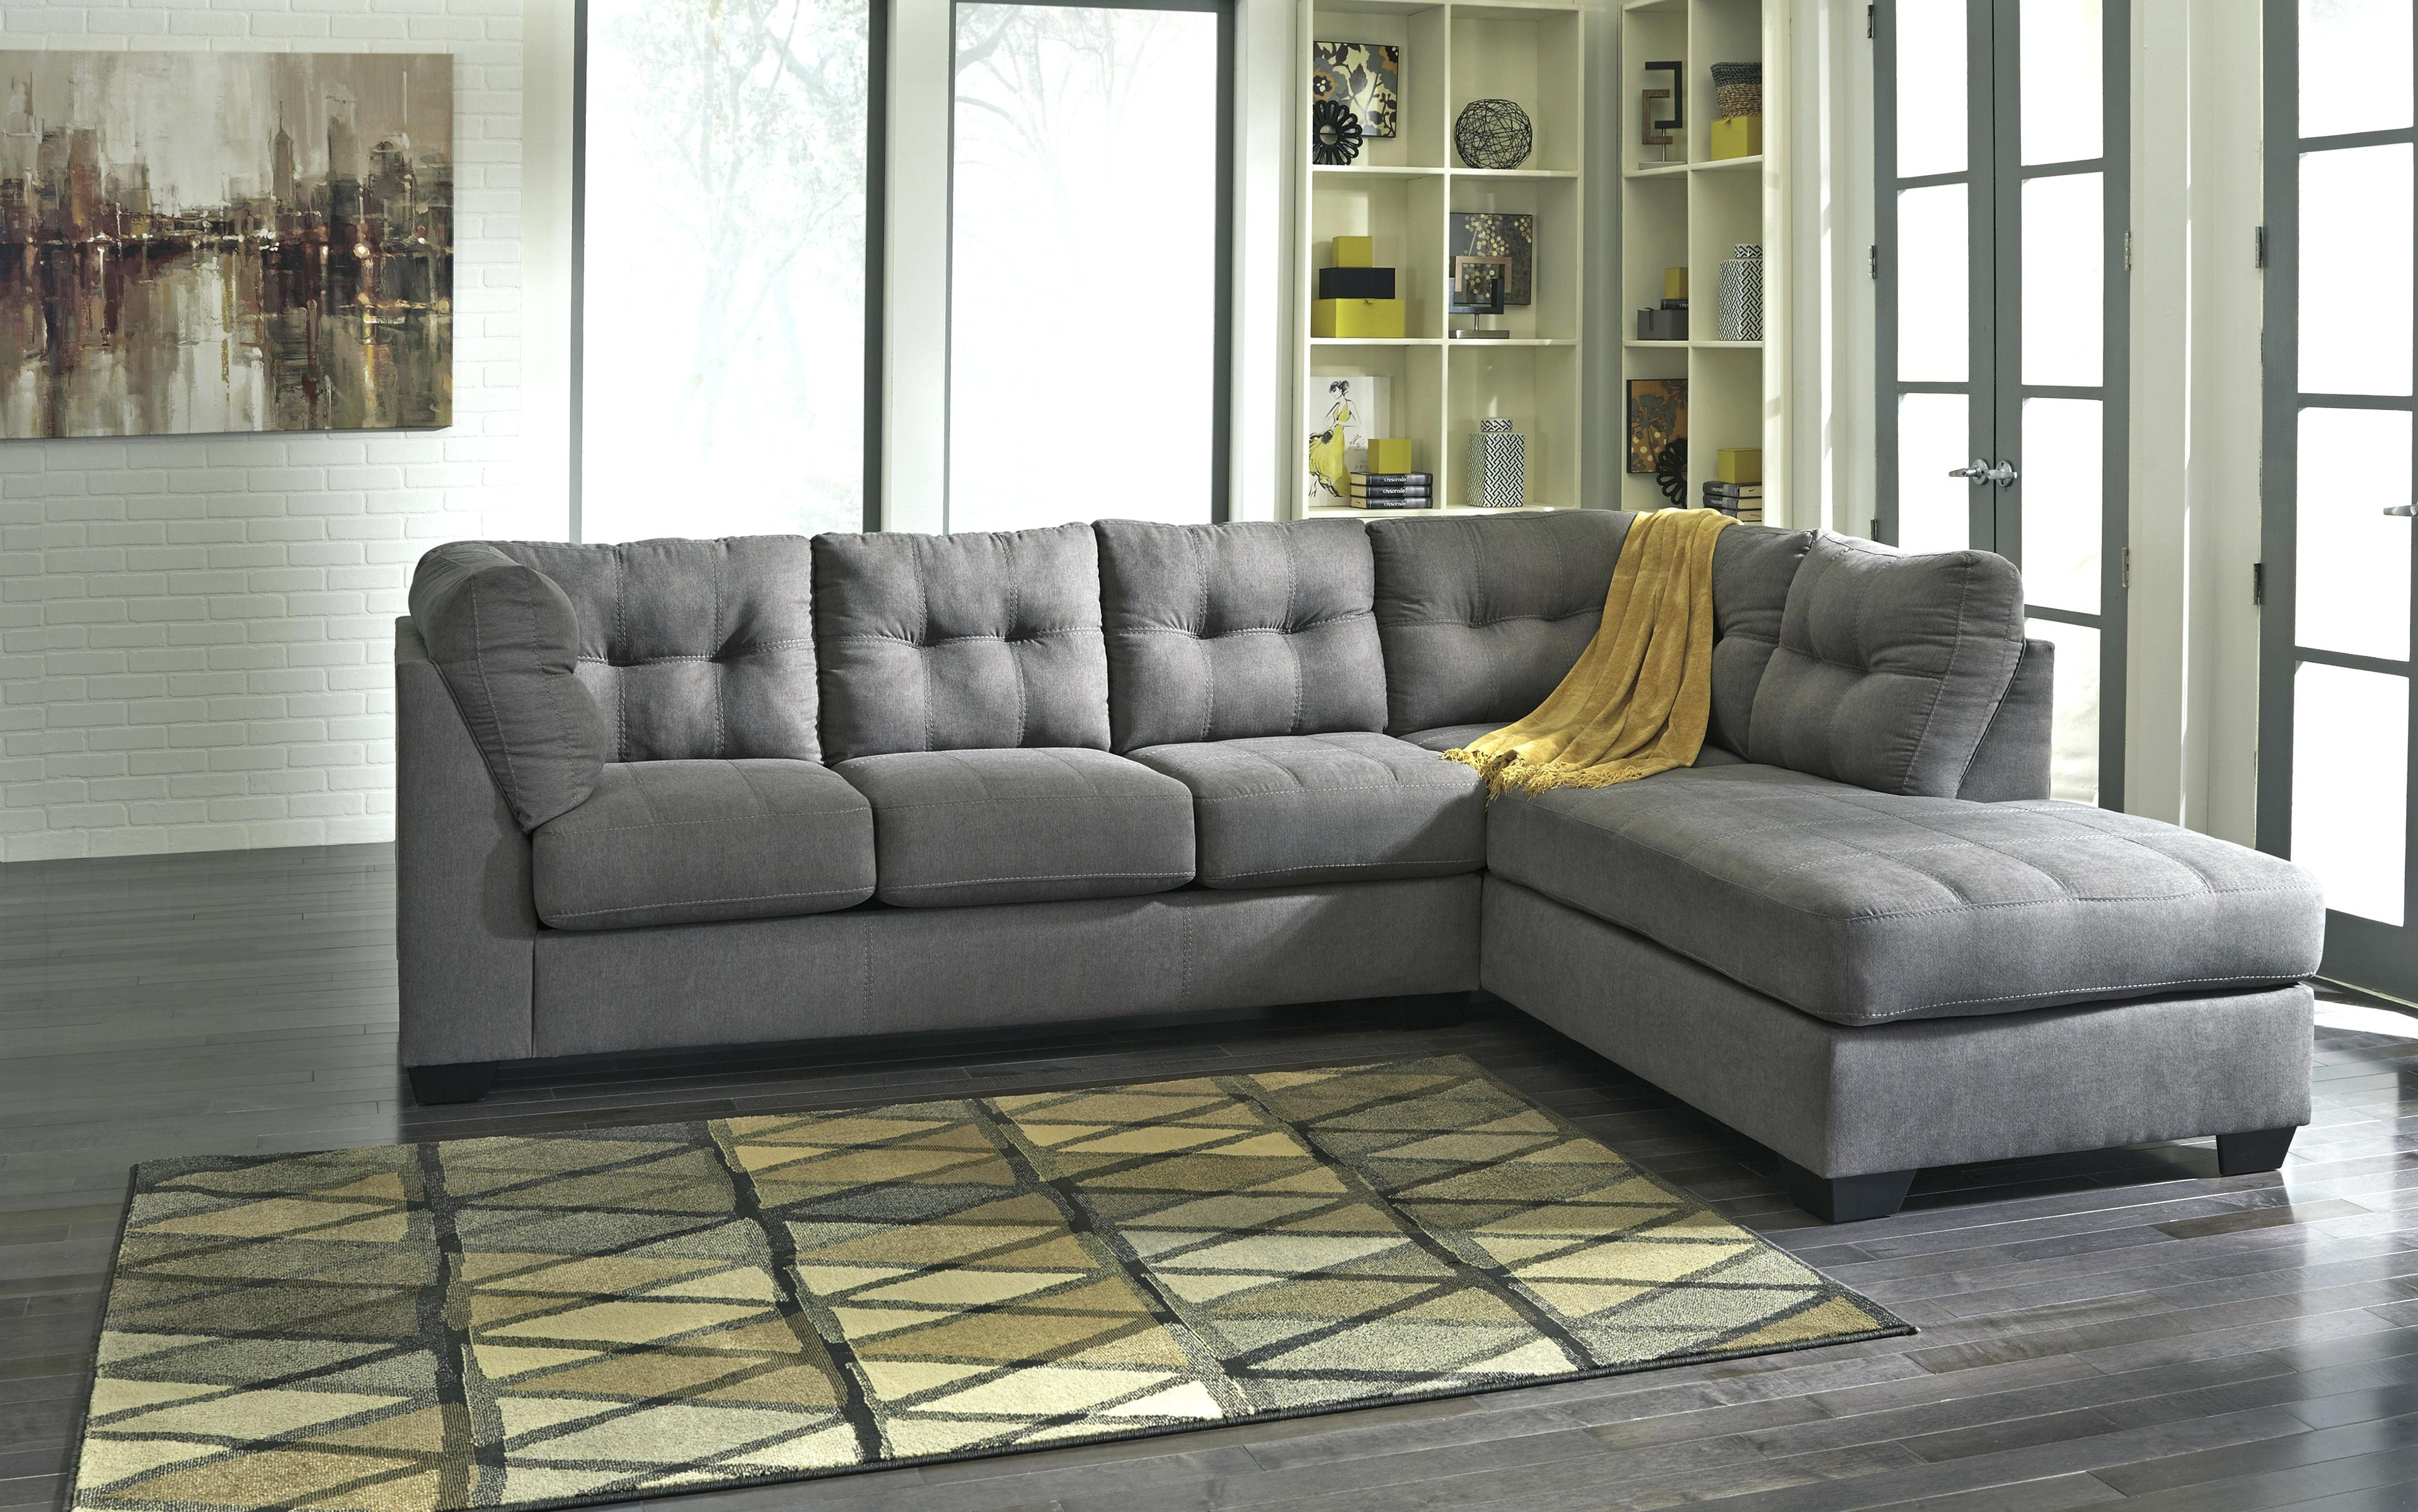 Fabric Sectional Sofas Modern With Chaise Toronto Sofa Power Recliner - intended for Mississauga Sectional Sofas (Image 3 of 10)